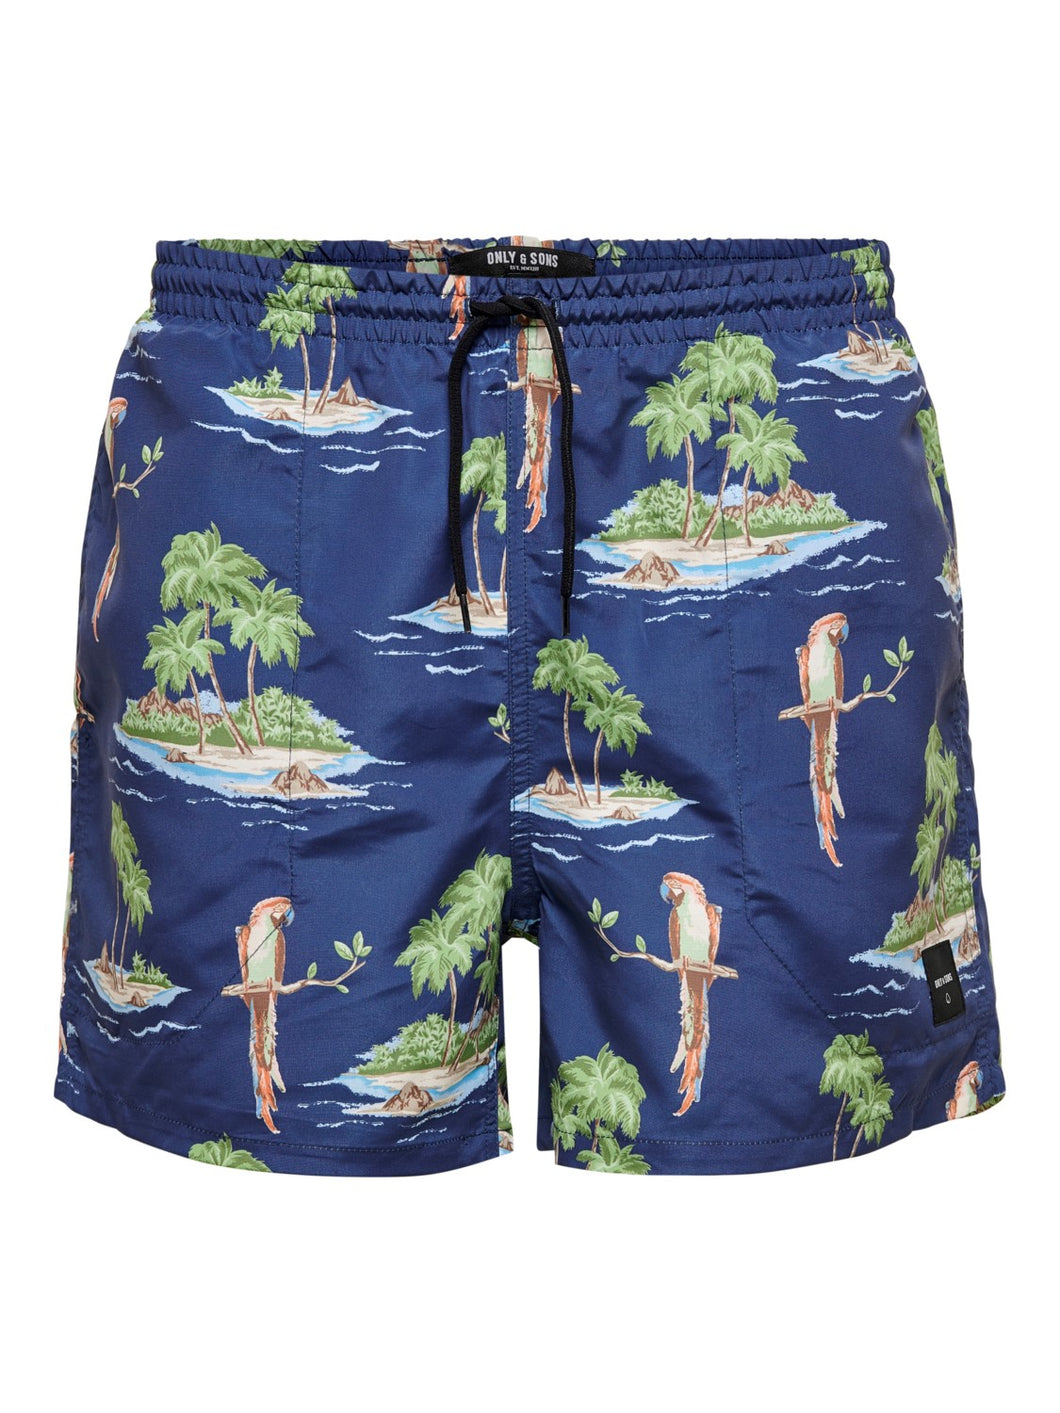 Only & Sons Tan Swim Shorts All Over Print Navy